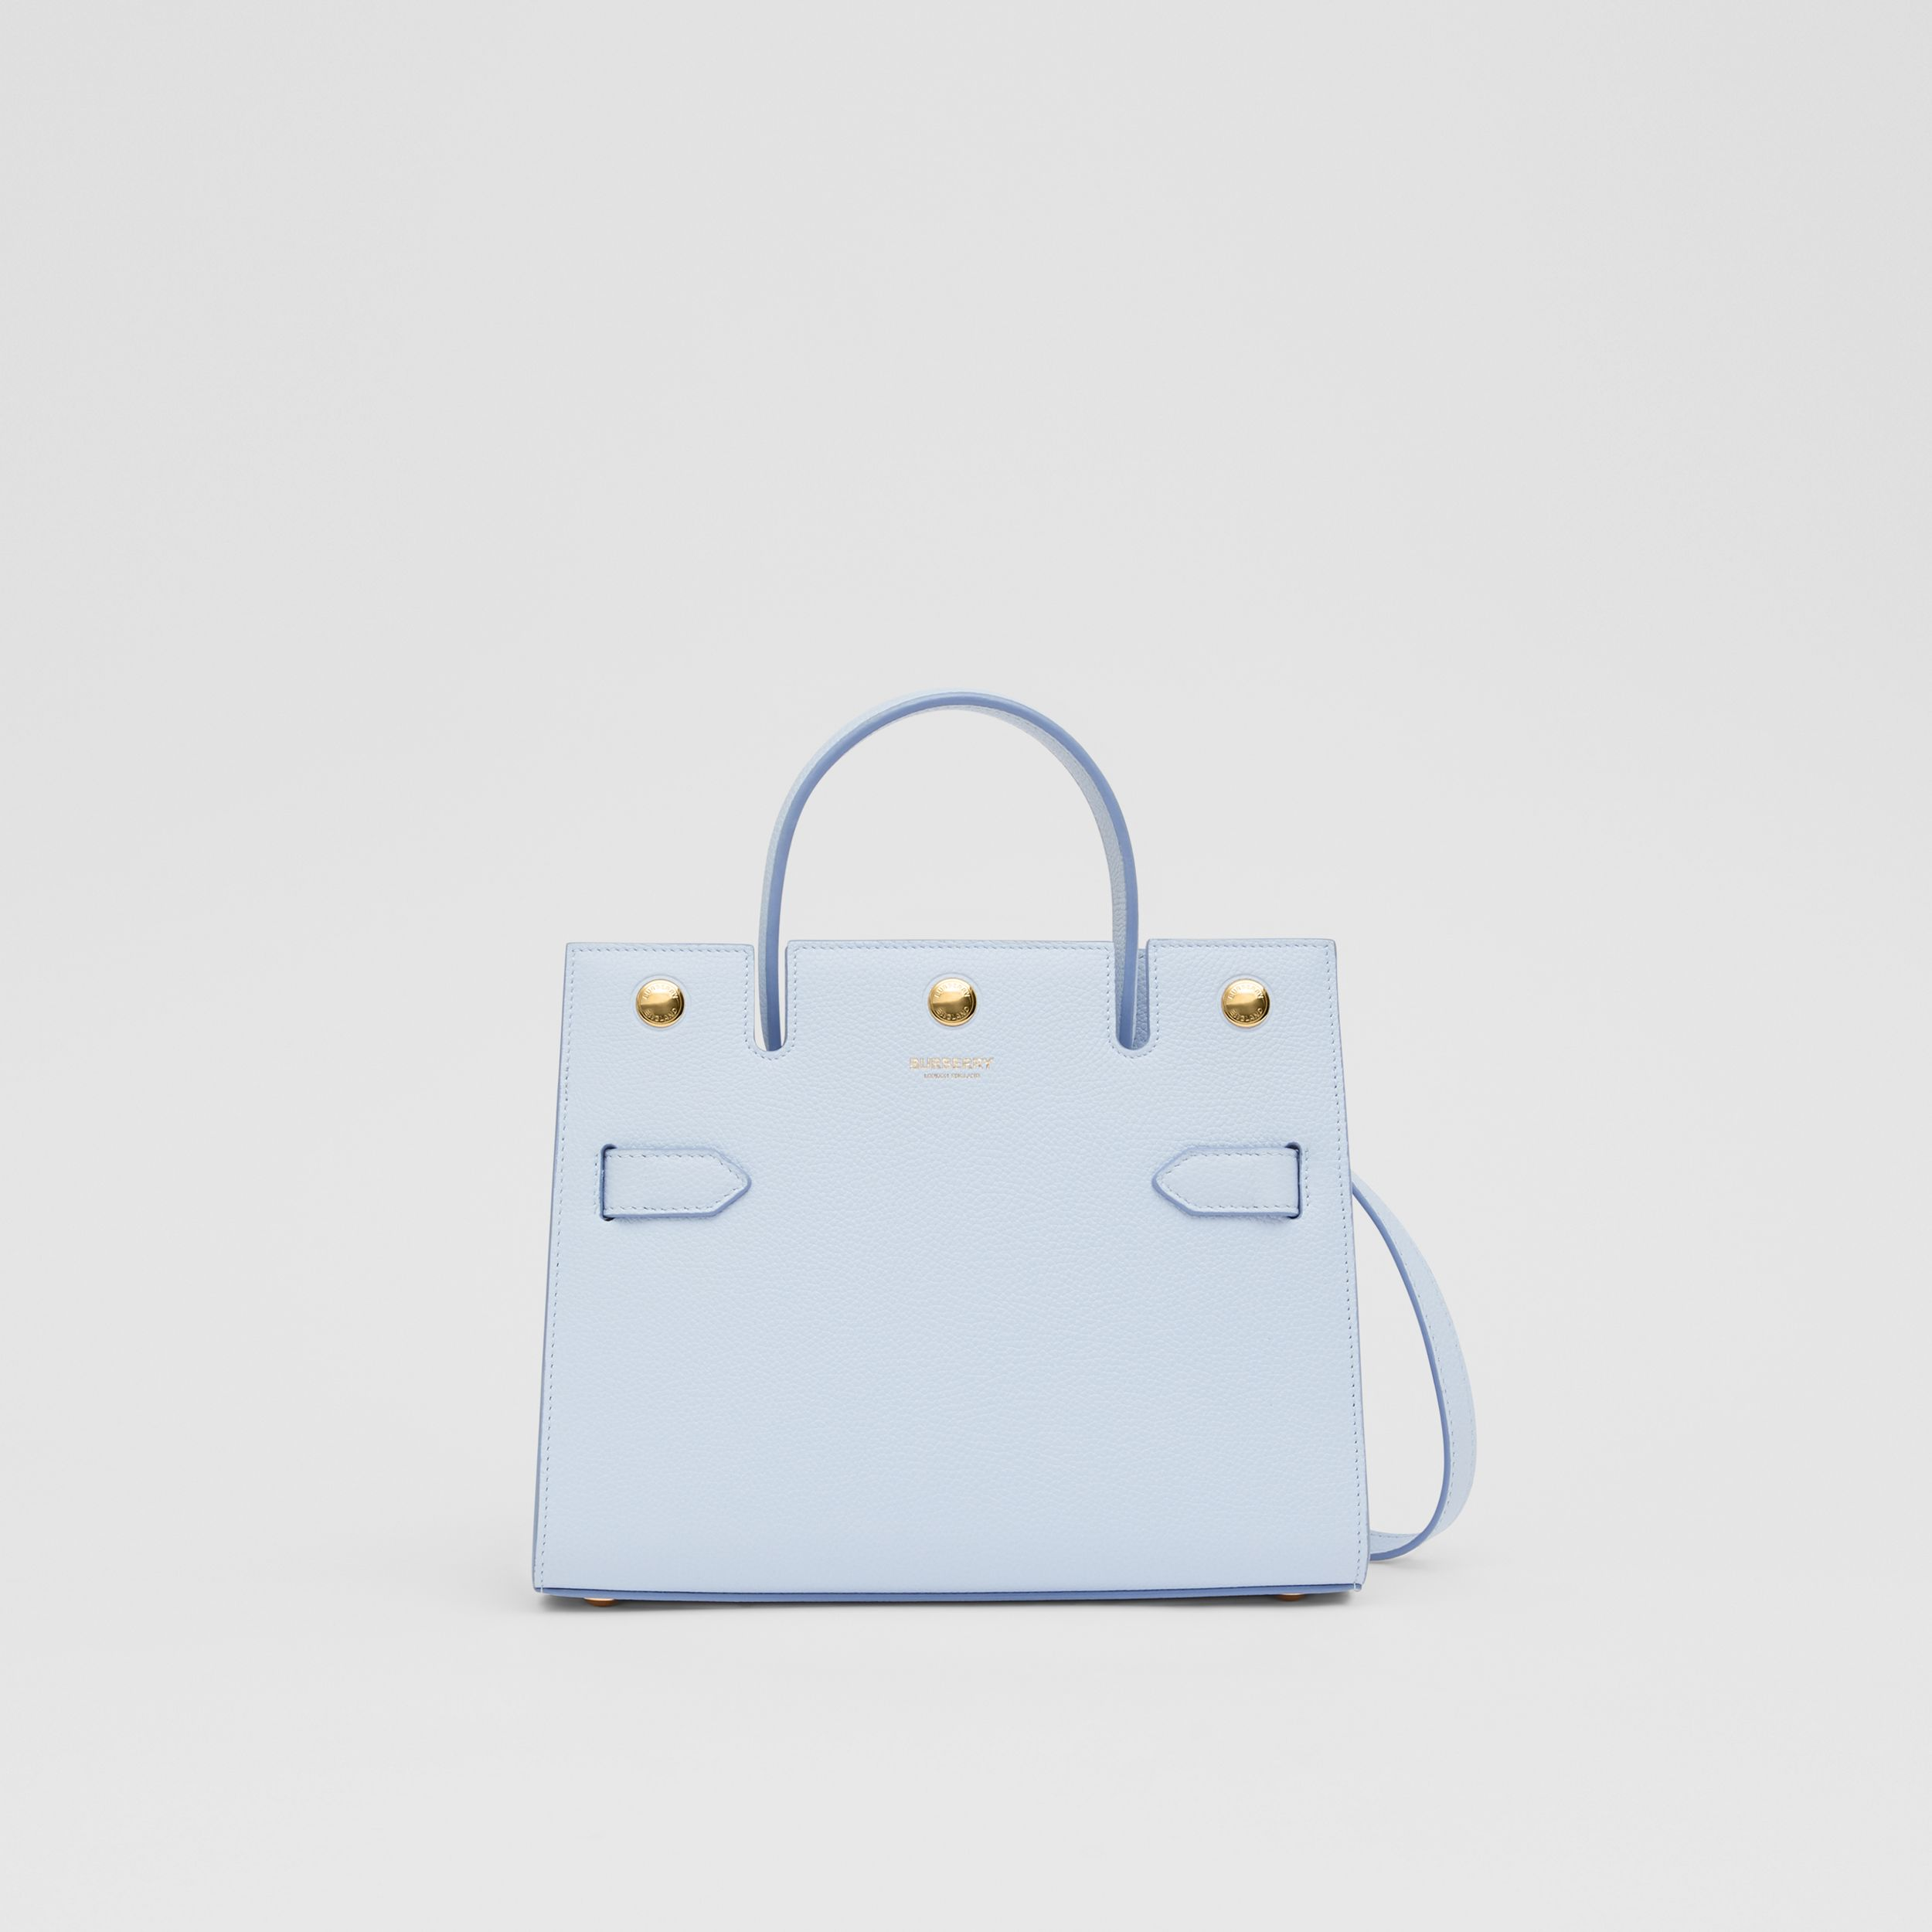 Mini Leather Title Bag in Pale Blue - Women | Burberry - 1